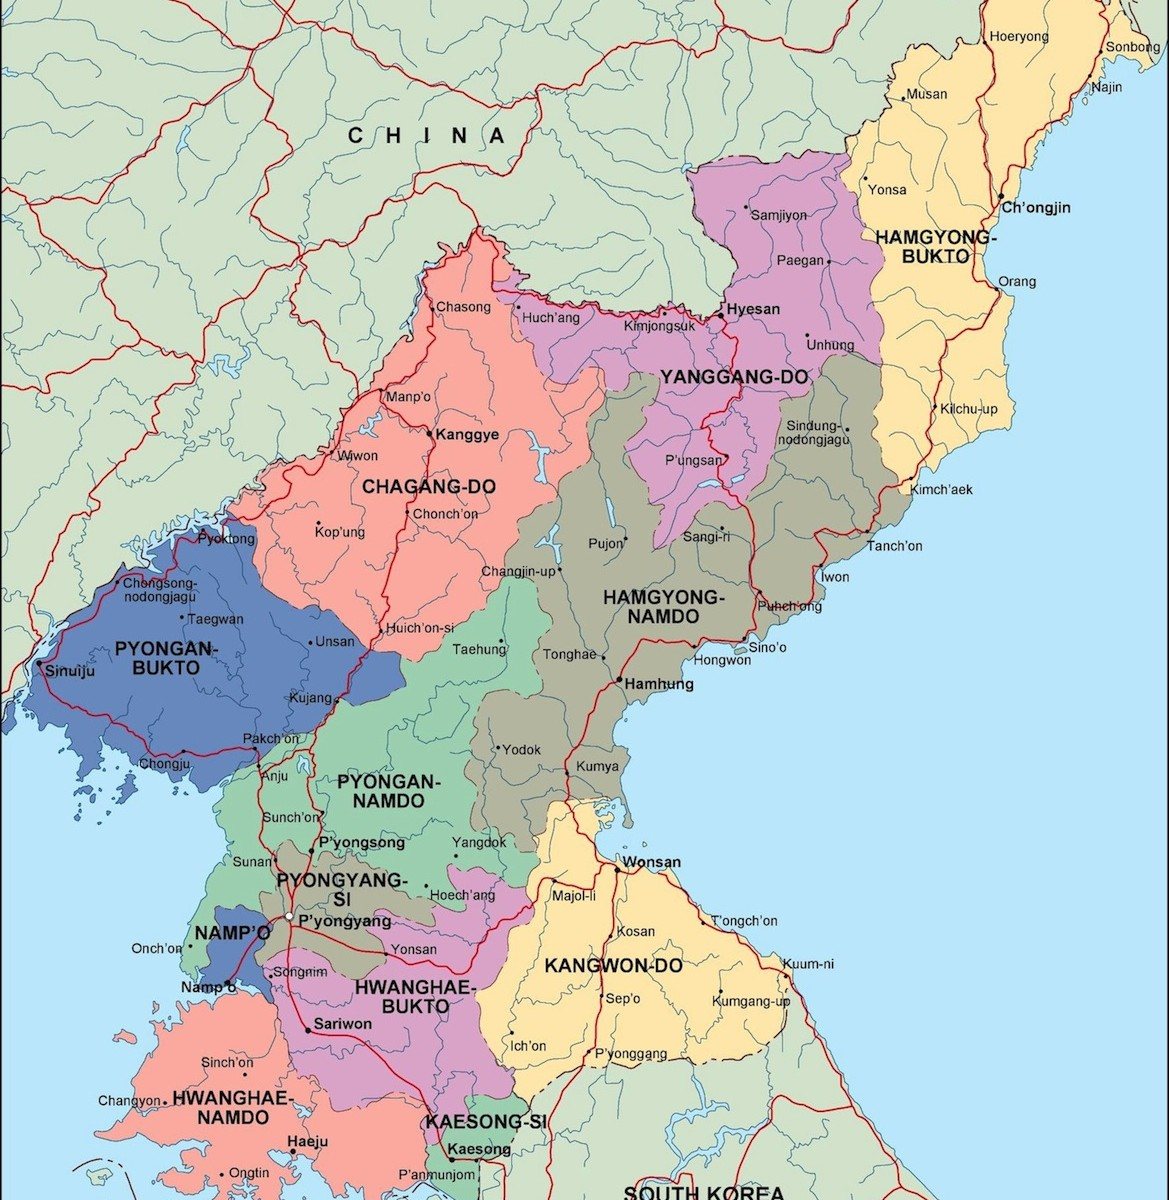 north korea political map | Order and download north korea political map